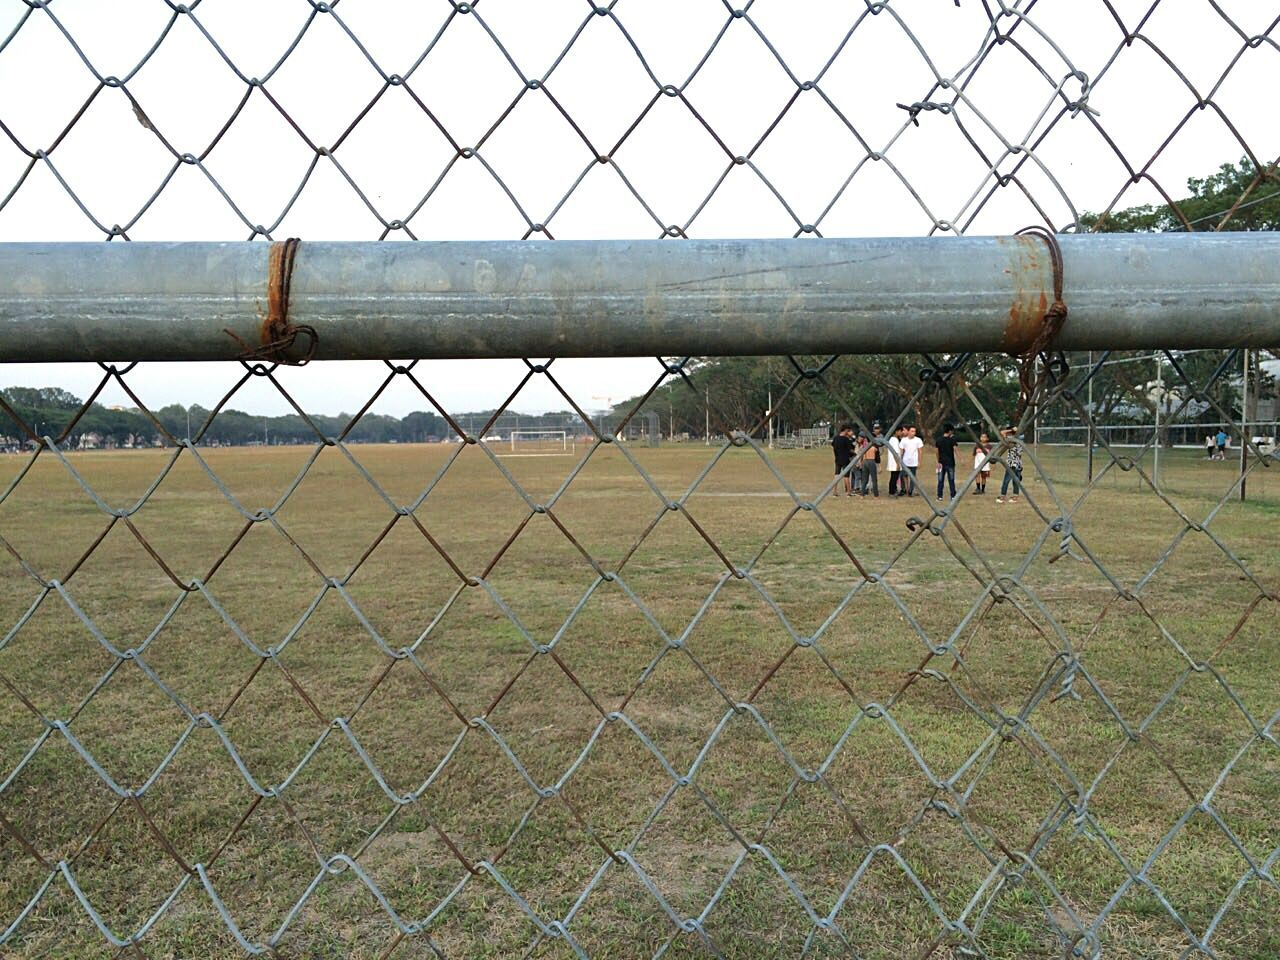 chainlink fence, safety, real people, protection, security, metal, day, togetherness, playing field, teamwork, sport, standing, outdoors, team sport, sports team, competitive sport, grass, group of people, playing, men, competition, sky, nature, adults only, people, adult